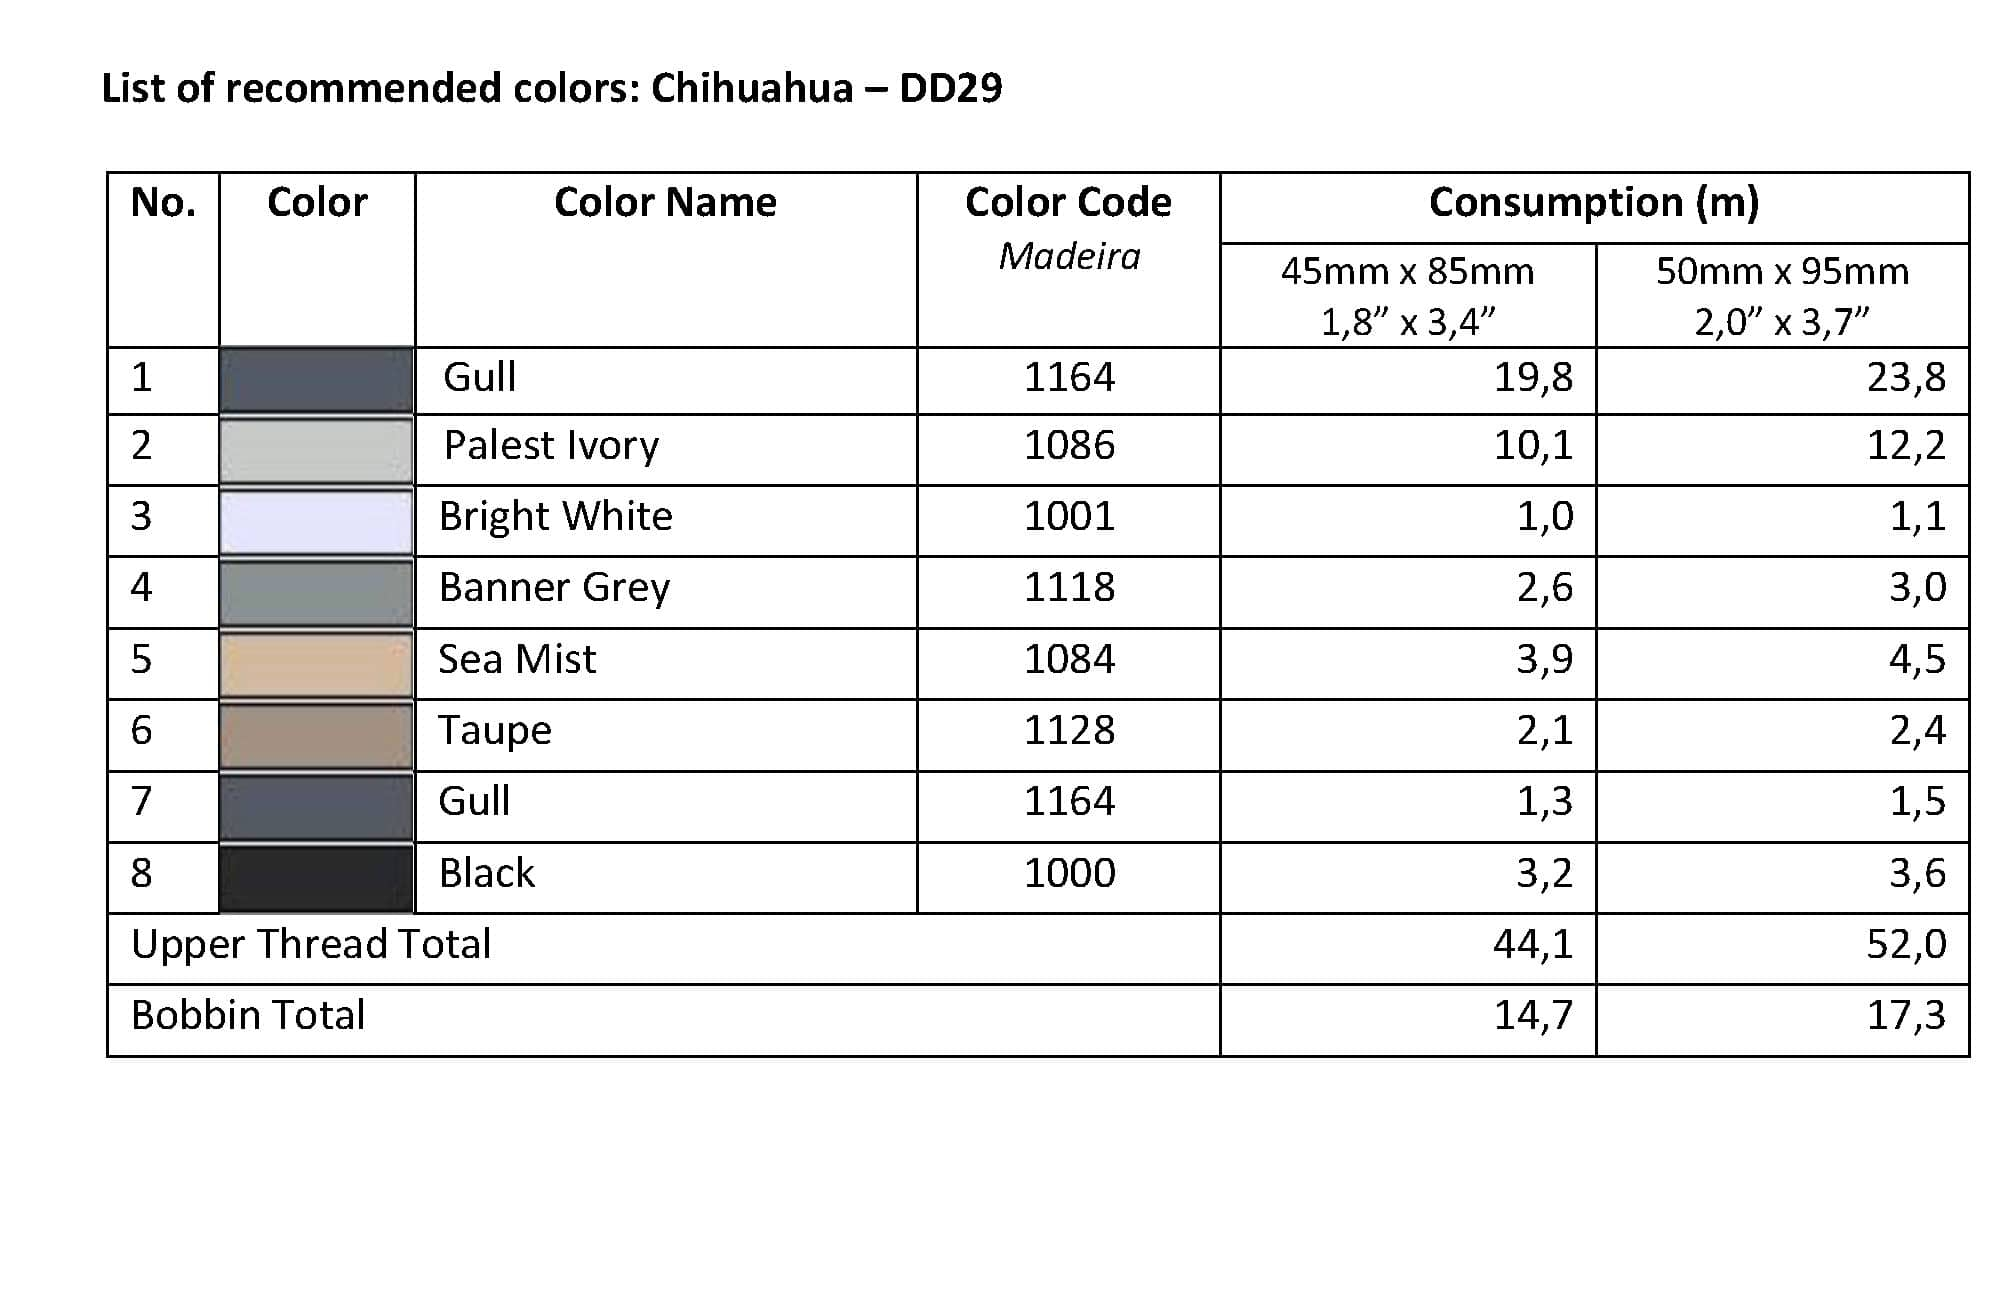 List of Recommended Colors - Chihuahua DD29